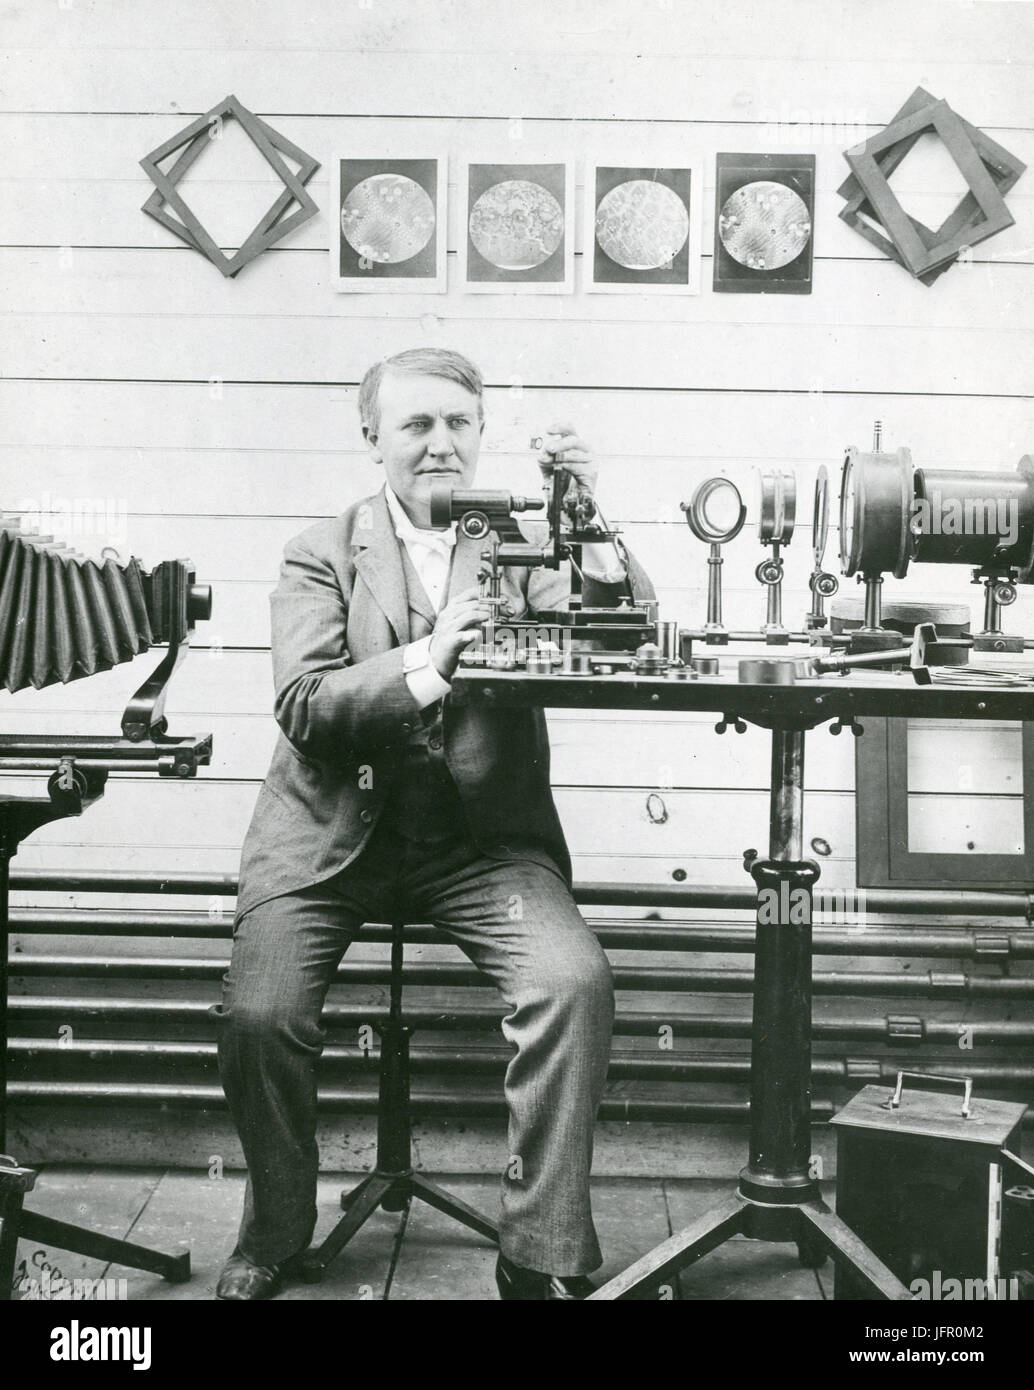 Thomas Alva Edison is shown in his laboratory experimenting with micrography, New Jersey. - Stock Image